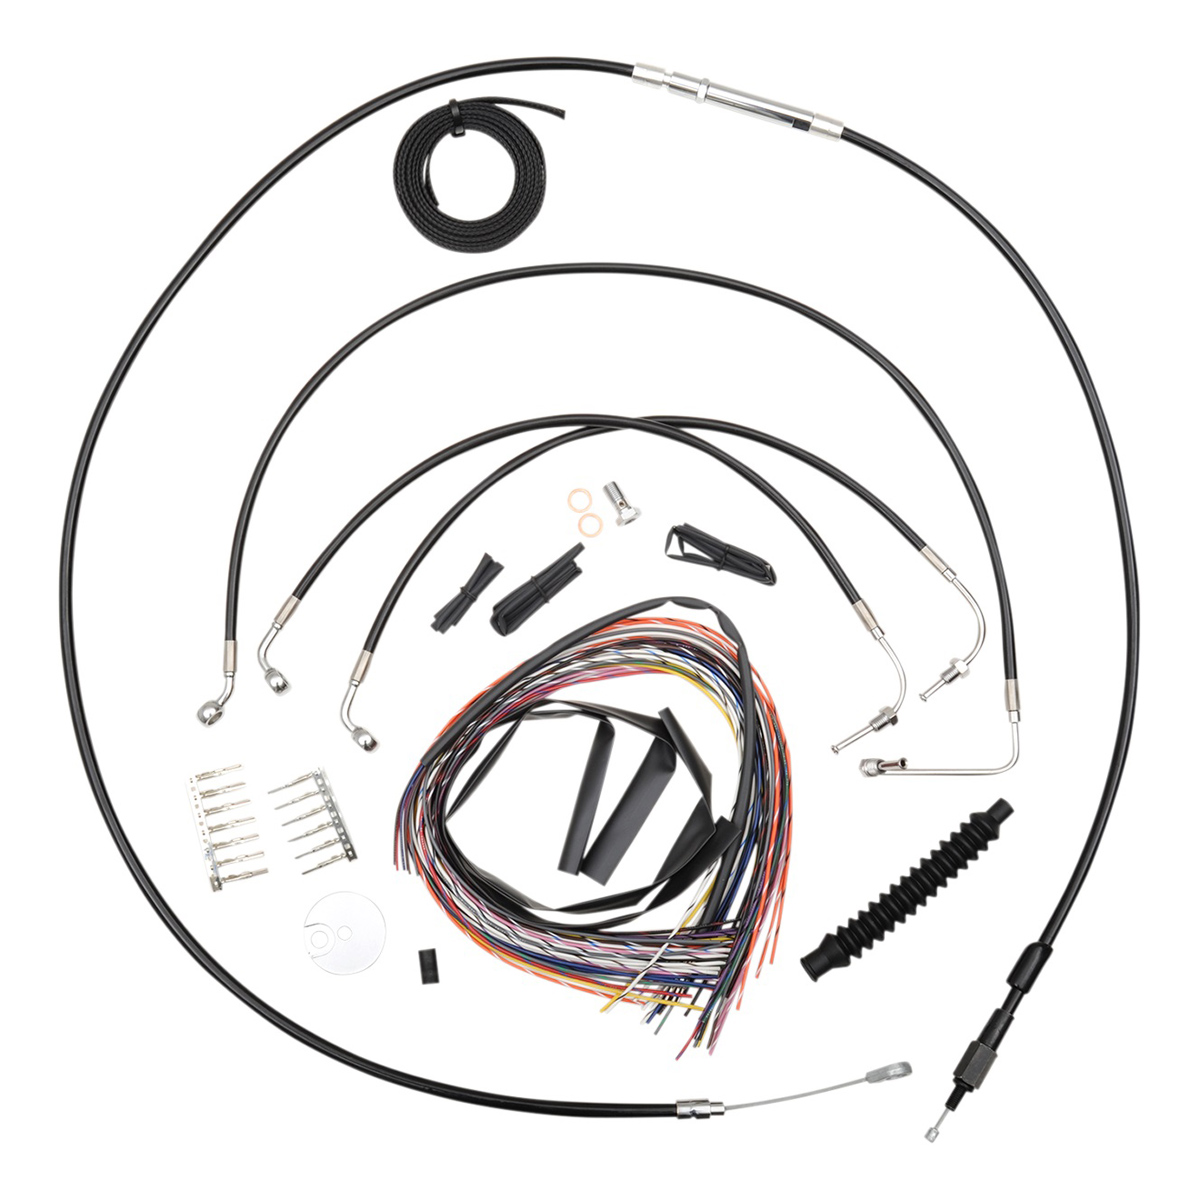 La Choppers Black Complete Cable Line Wiring Handlebar Kit For 18 20 Bars On Models Without